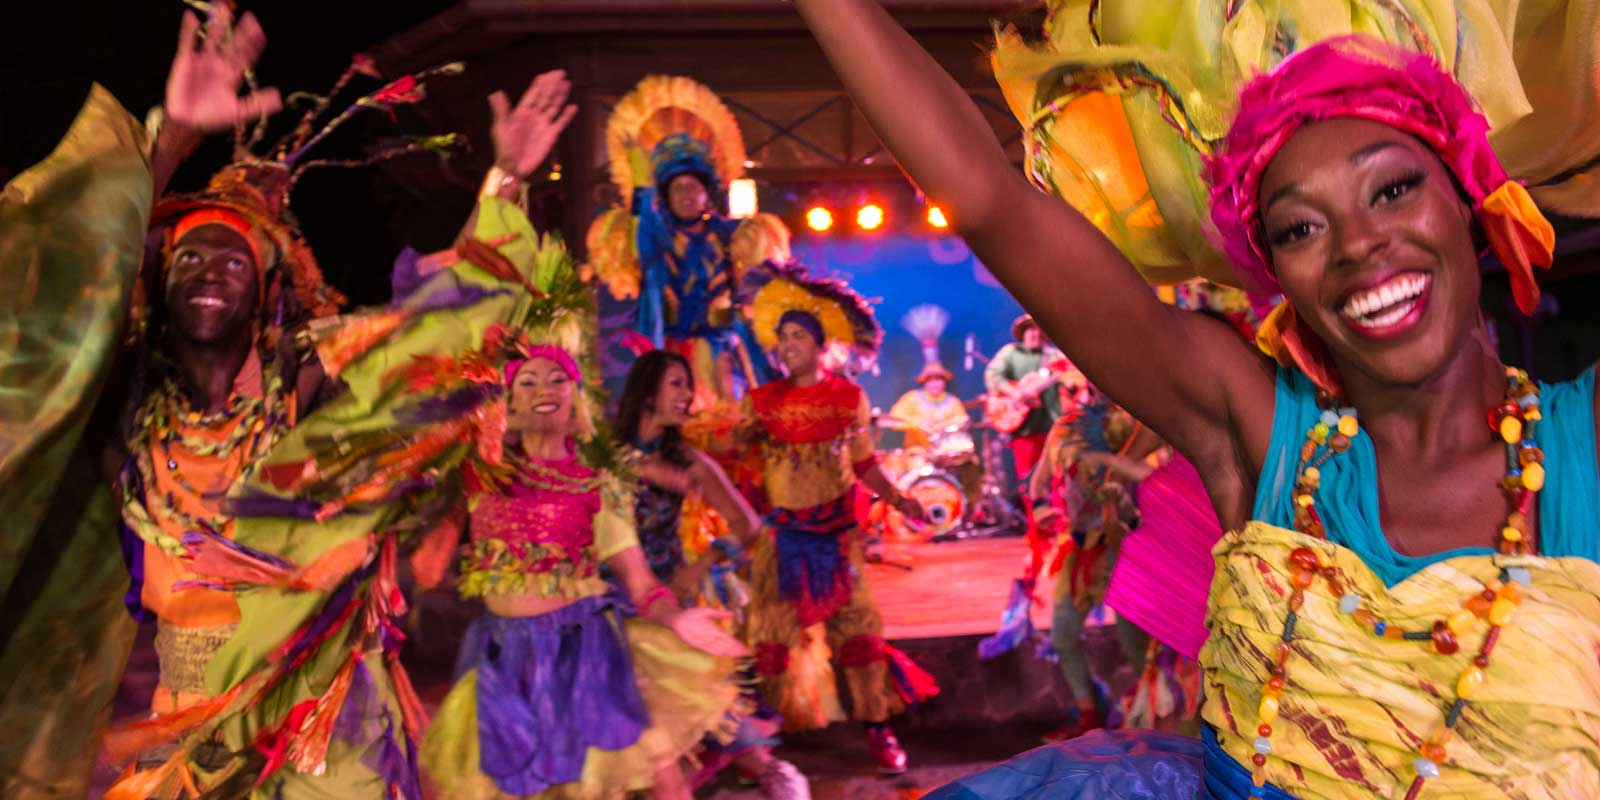 Join the Carnivale fun at Animal Kingdom. Just one of many activities adults might enjoy at Disney World.